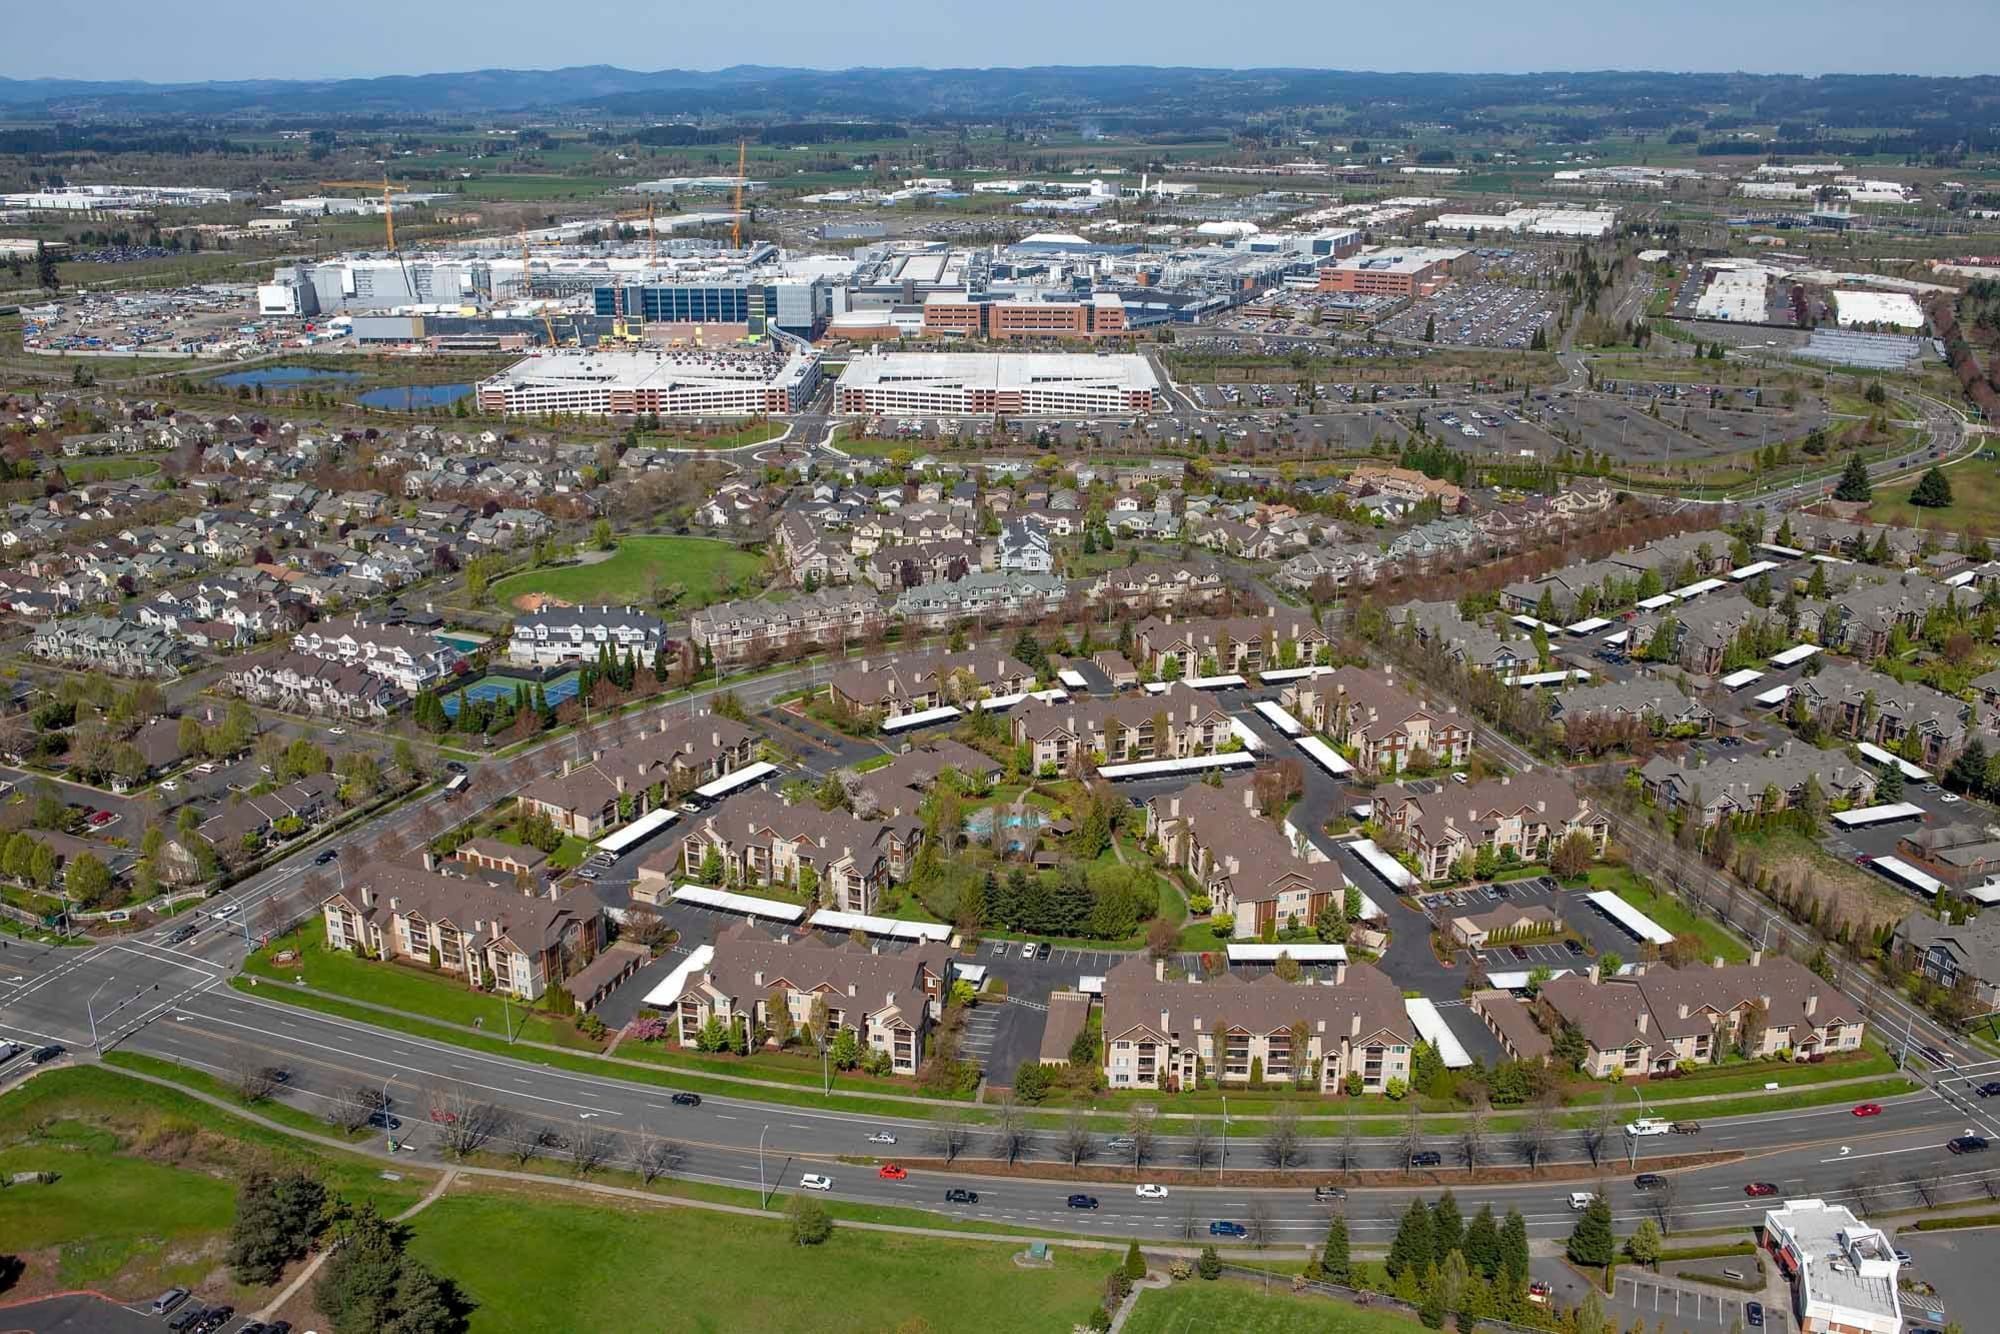 An aerial view of The Grove at Orenco Station in Hillsboro, Oregon